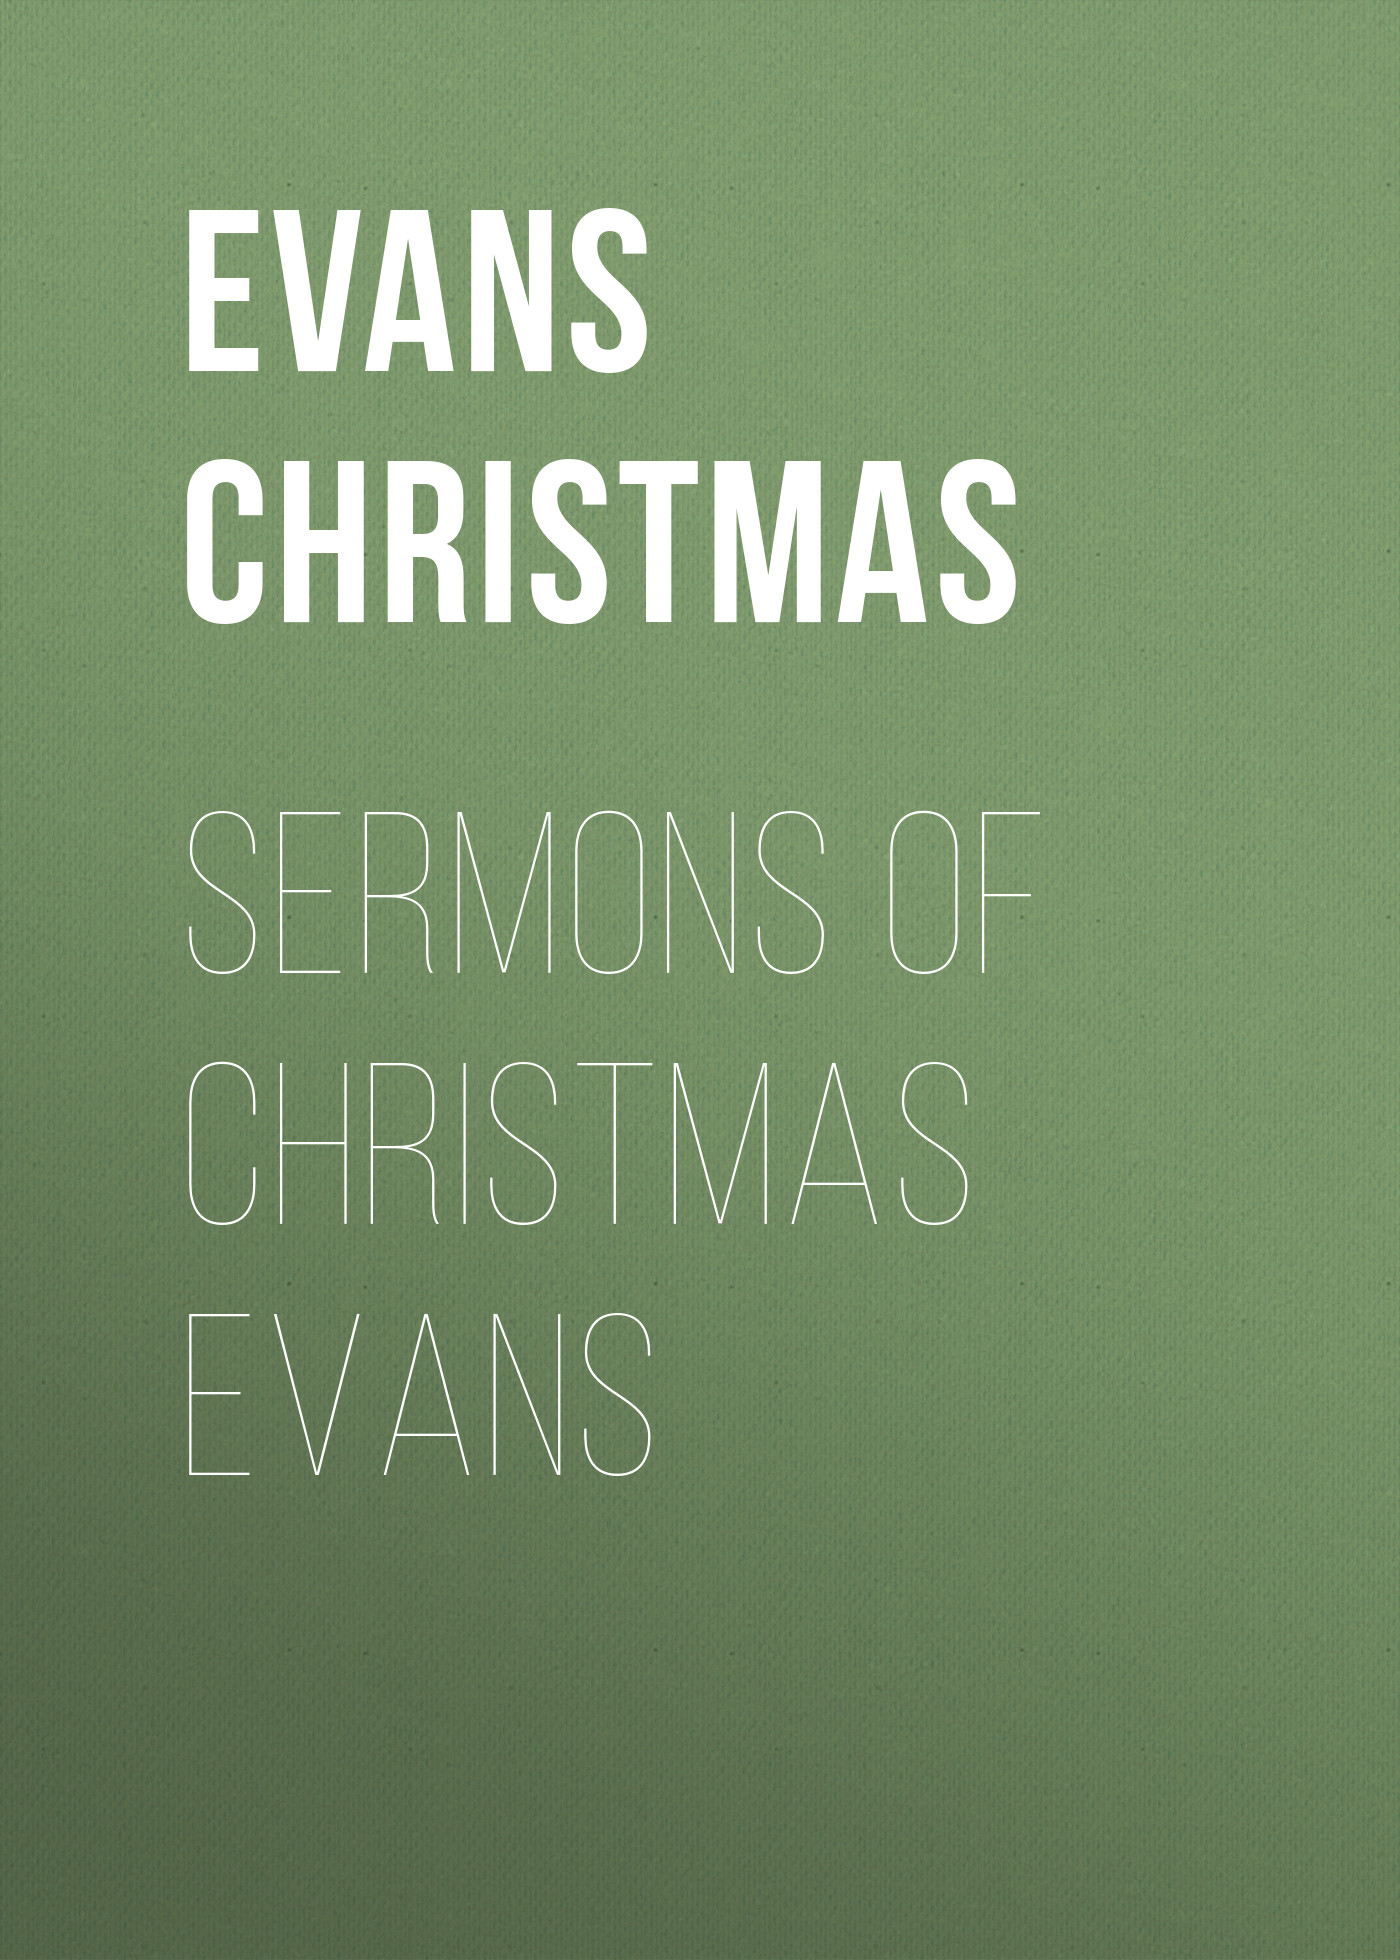 Evans Christmas Sermons of Christmas Evans ysl top secrets lip perfector